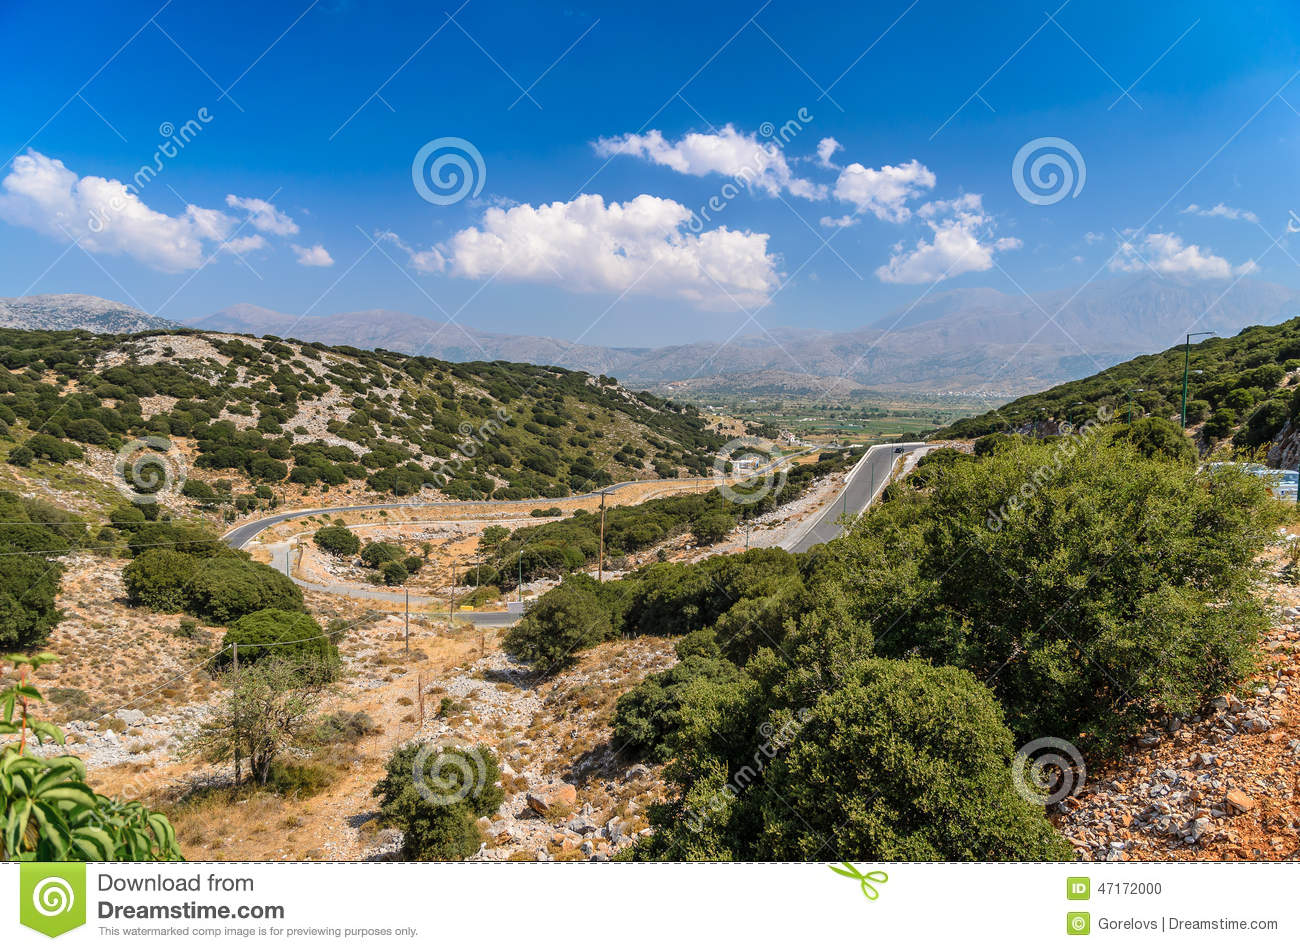 Landscape of Crete island at Lasithi district.